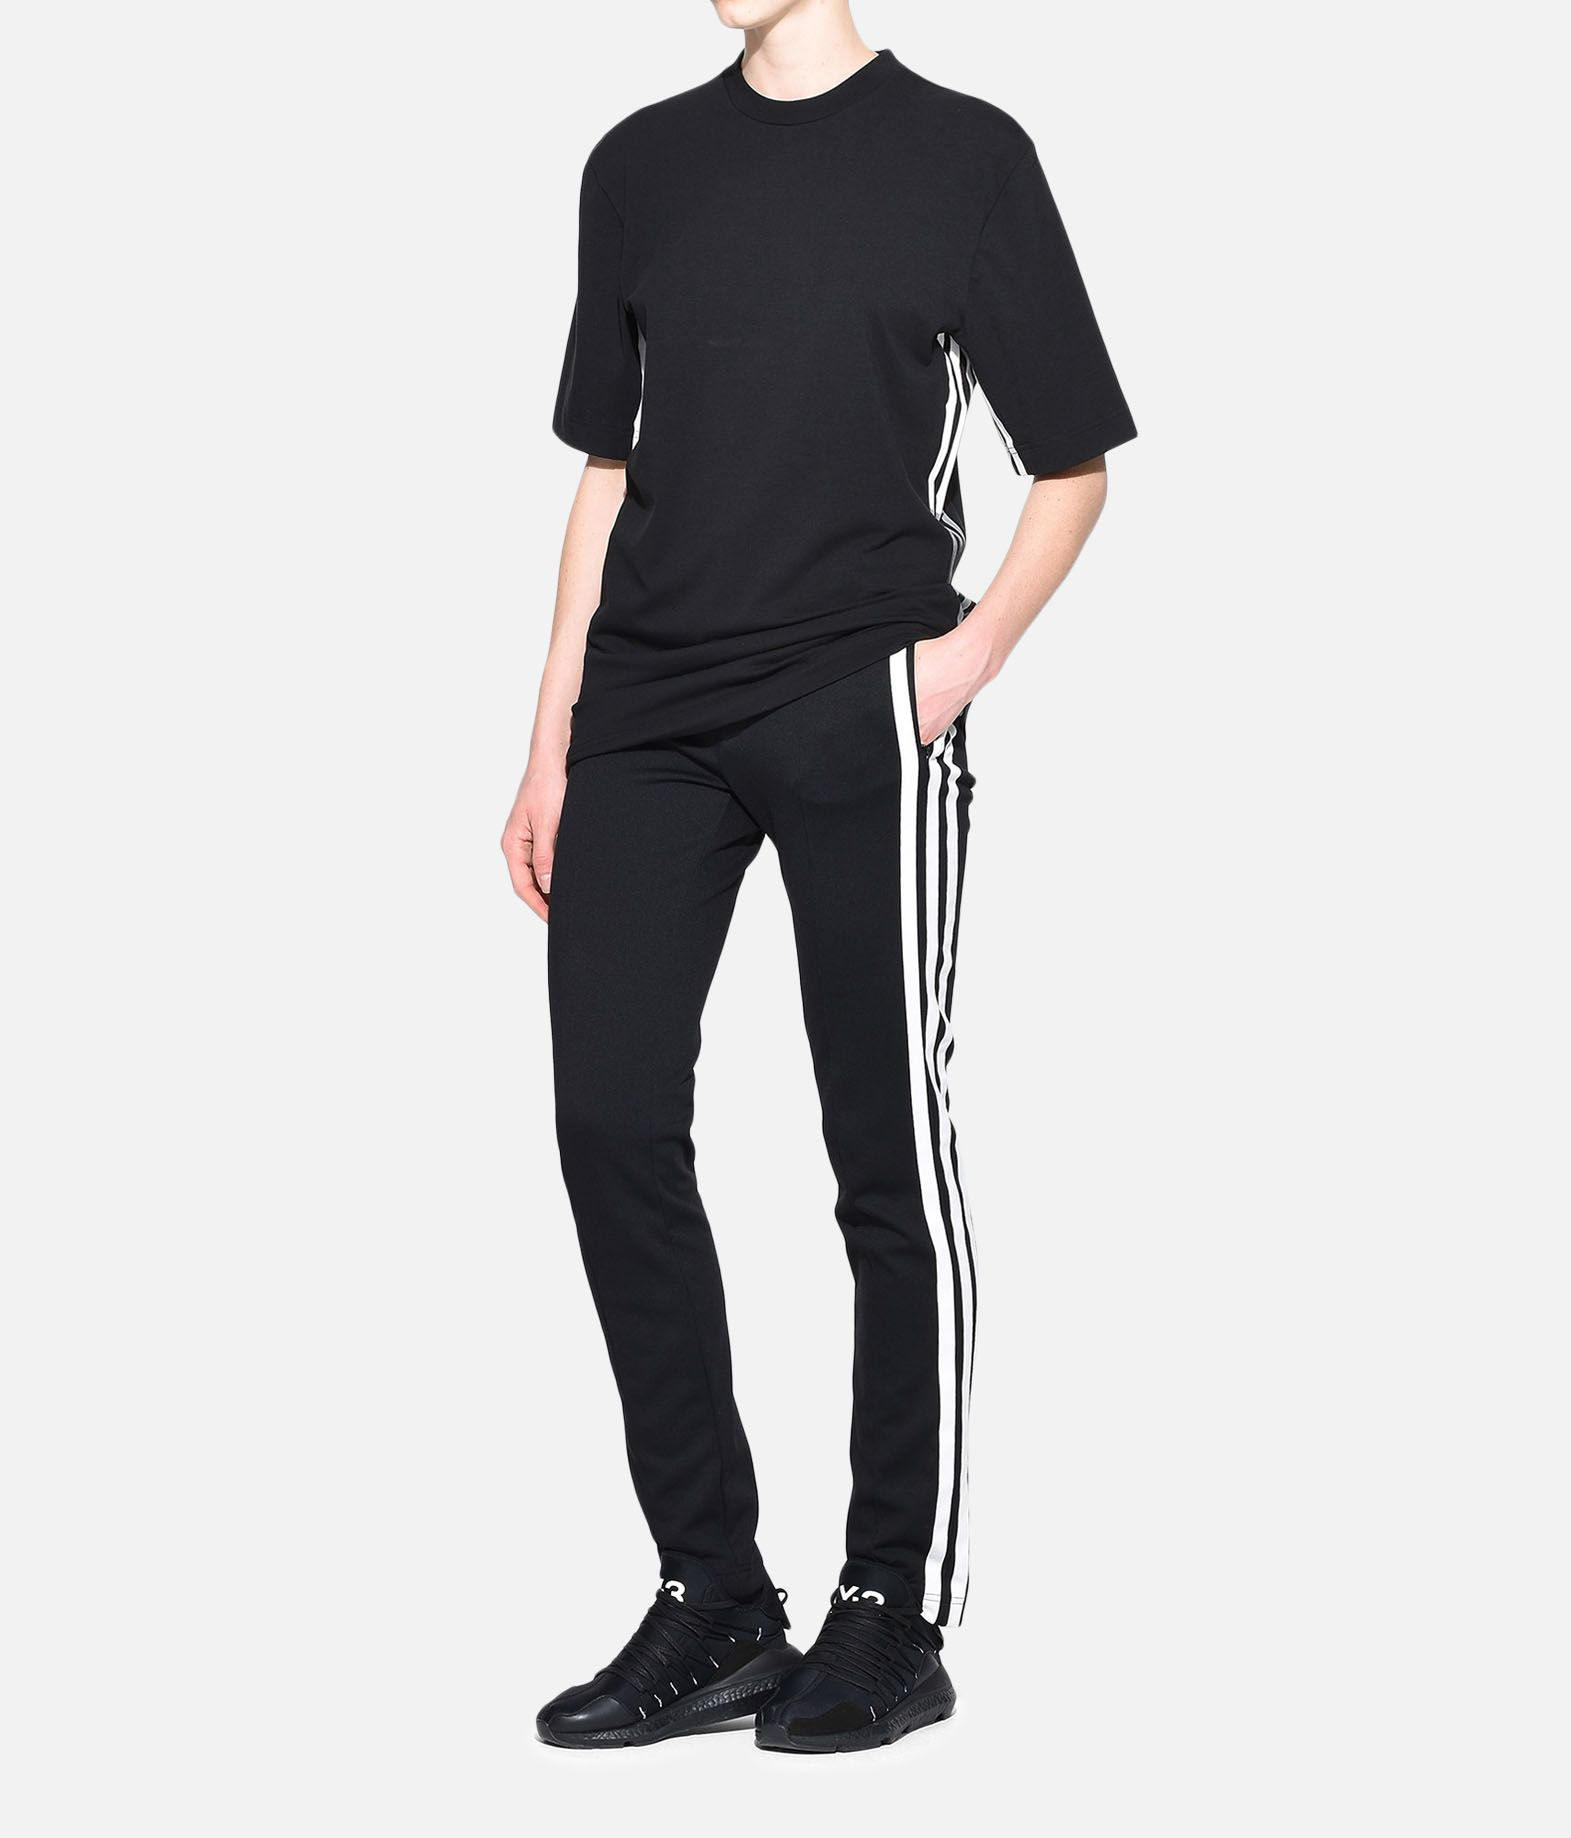 Y-3 Y-3 3-Stripes Tee Short sleeve t-shirt Woman a